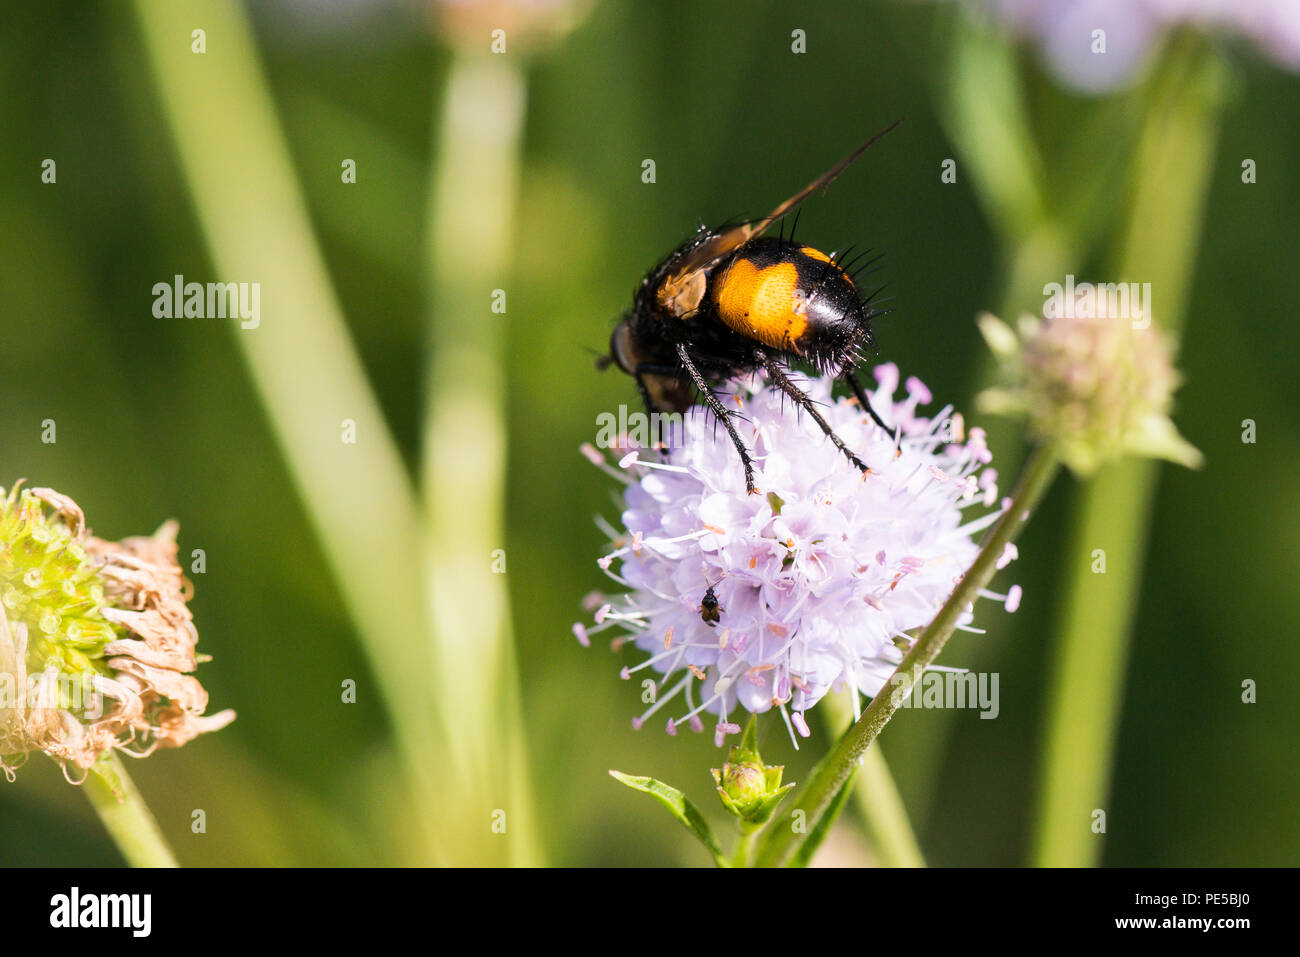 A Nowickia ferox fly on the flower head of a southern succisella (Succisella inflexa) - Stock Image